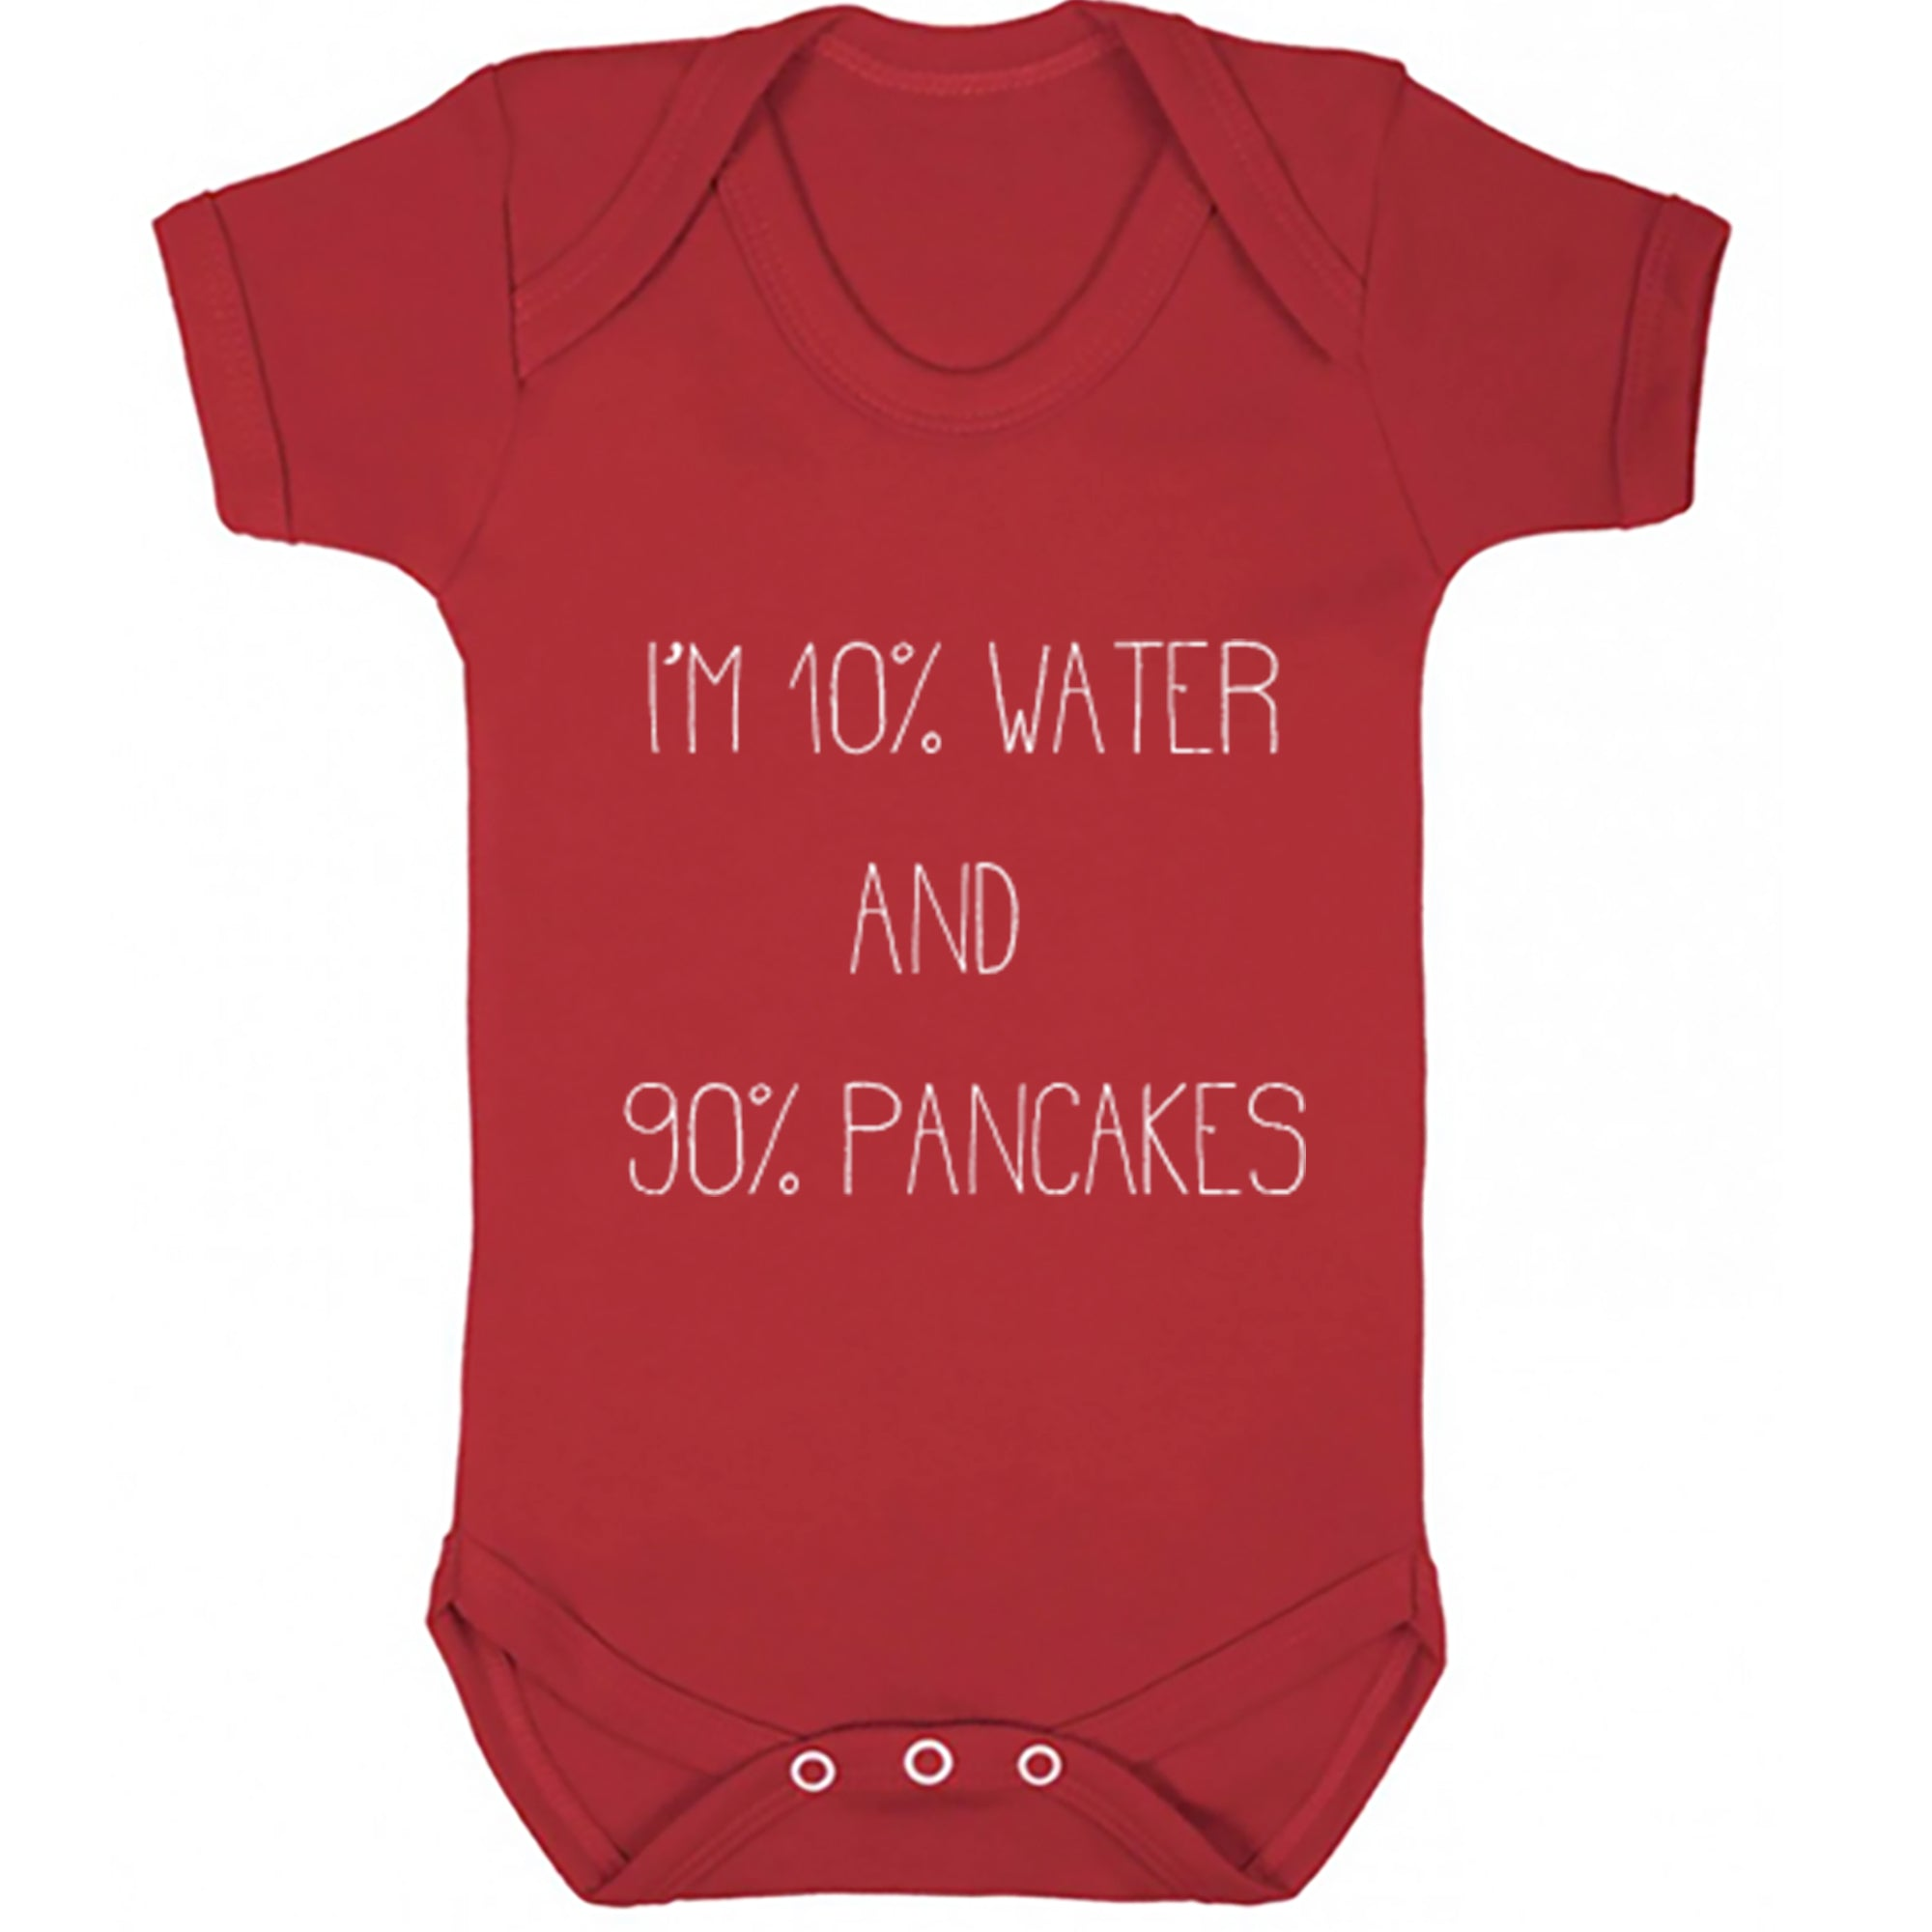 I'm 10% Water And 90% Pancakes Baby Vest S0491 - Illustrated Identity Ltd.